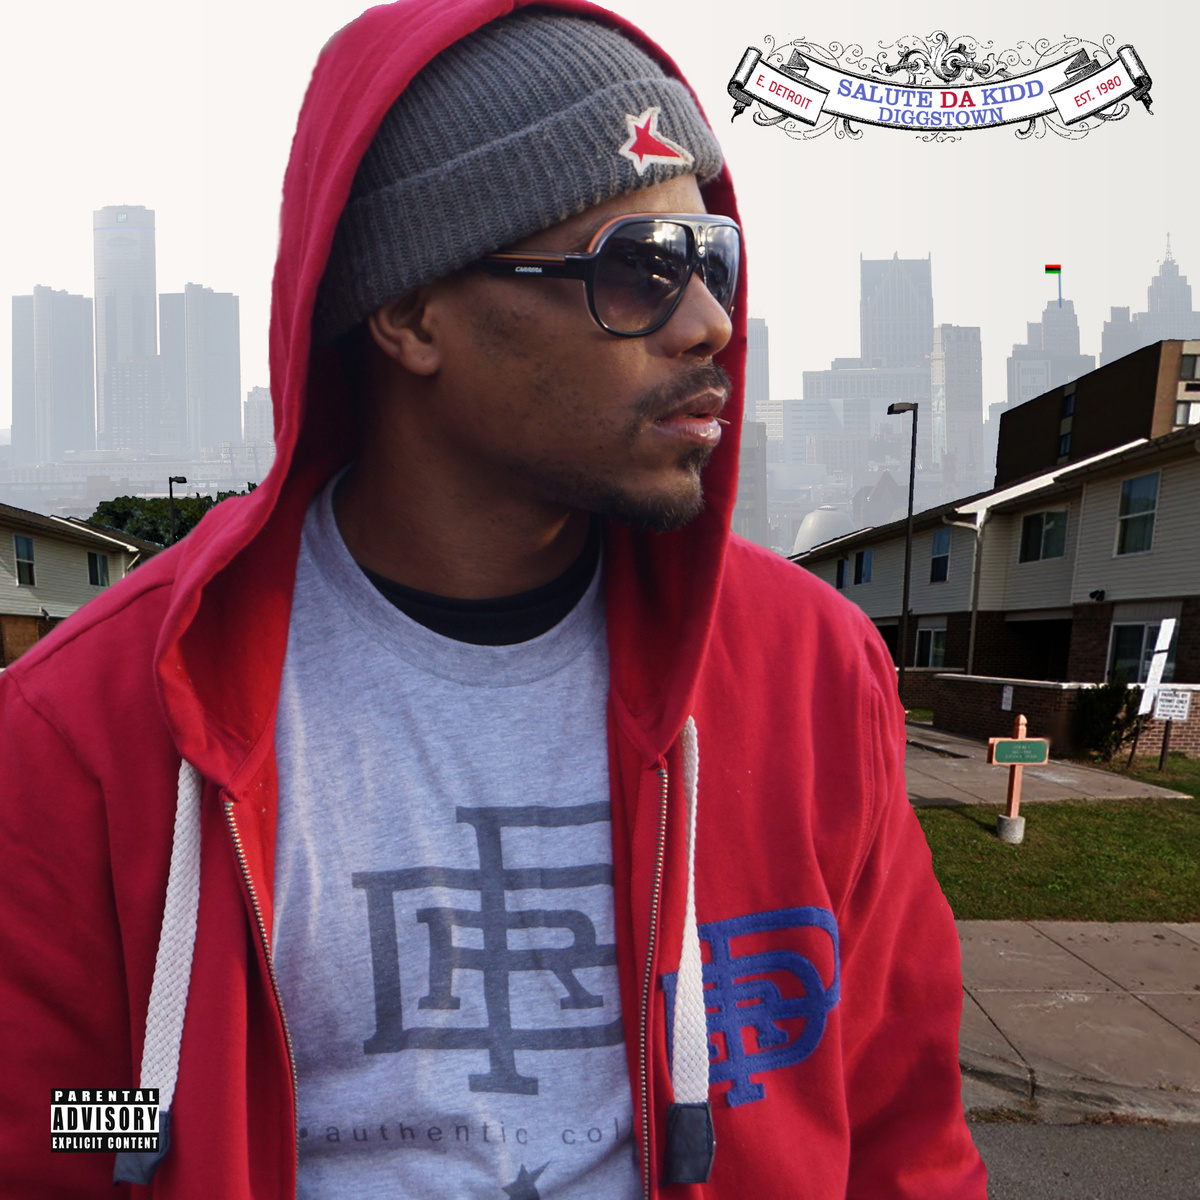 SALUTE DA KIDD – DIGGSTOWN LP Review